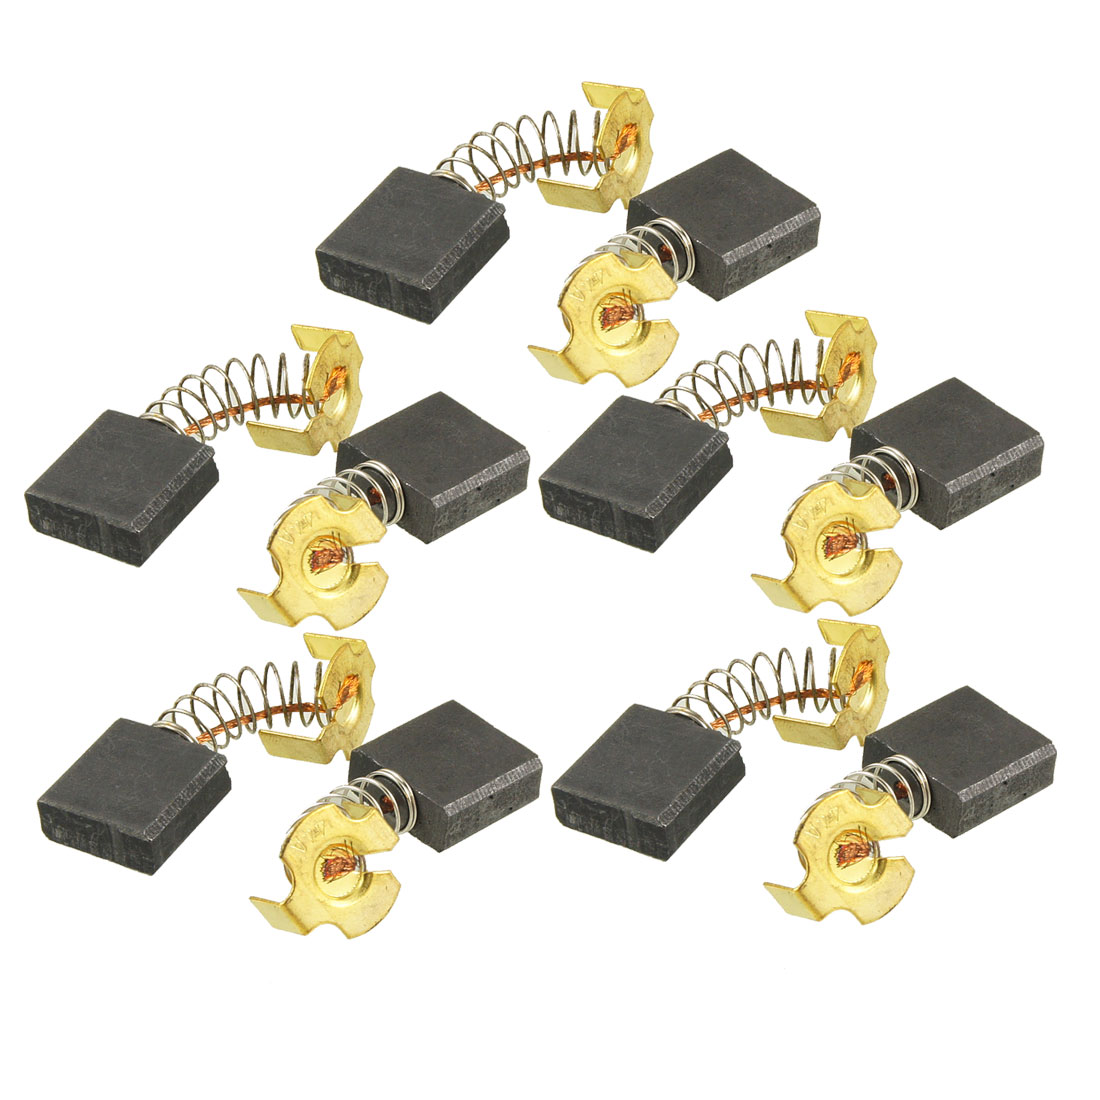 "10 Pcs DC Electric Motor 43/64"" x 43/64"" x 7/25"" Carbon Brushes"